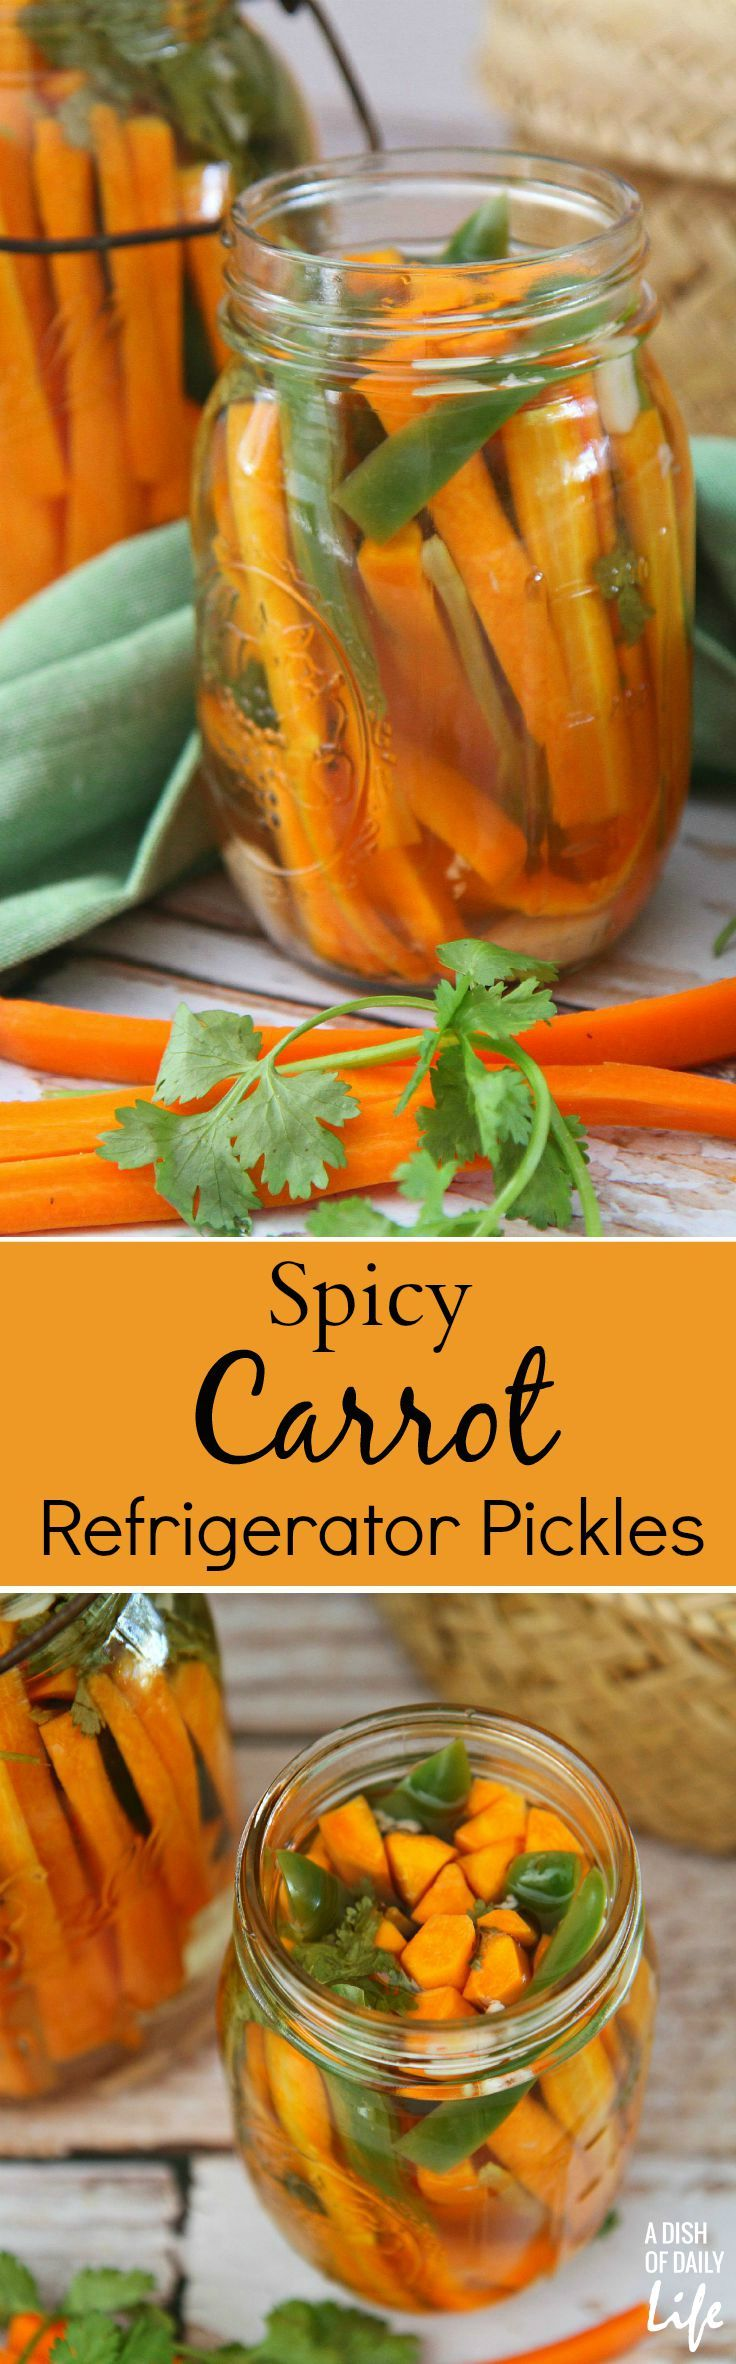 Like Mexican carrots? This spicy carrot refrigerator pickles recipe is easy to make, and will satisfy your hot spicy pickles craving! Perfect as a game day appetizer, Mexican night, or Cinco de Mayo!